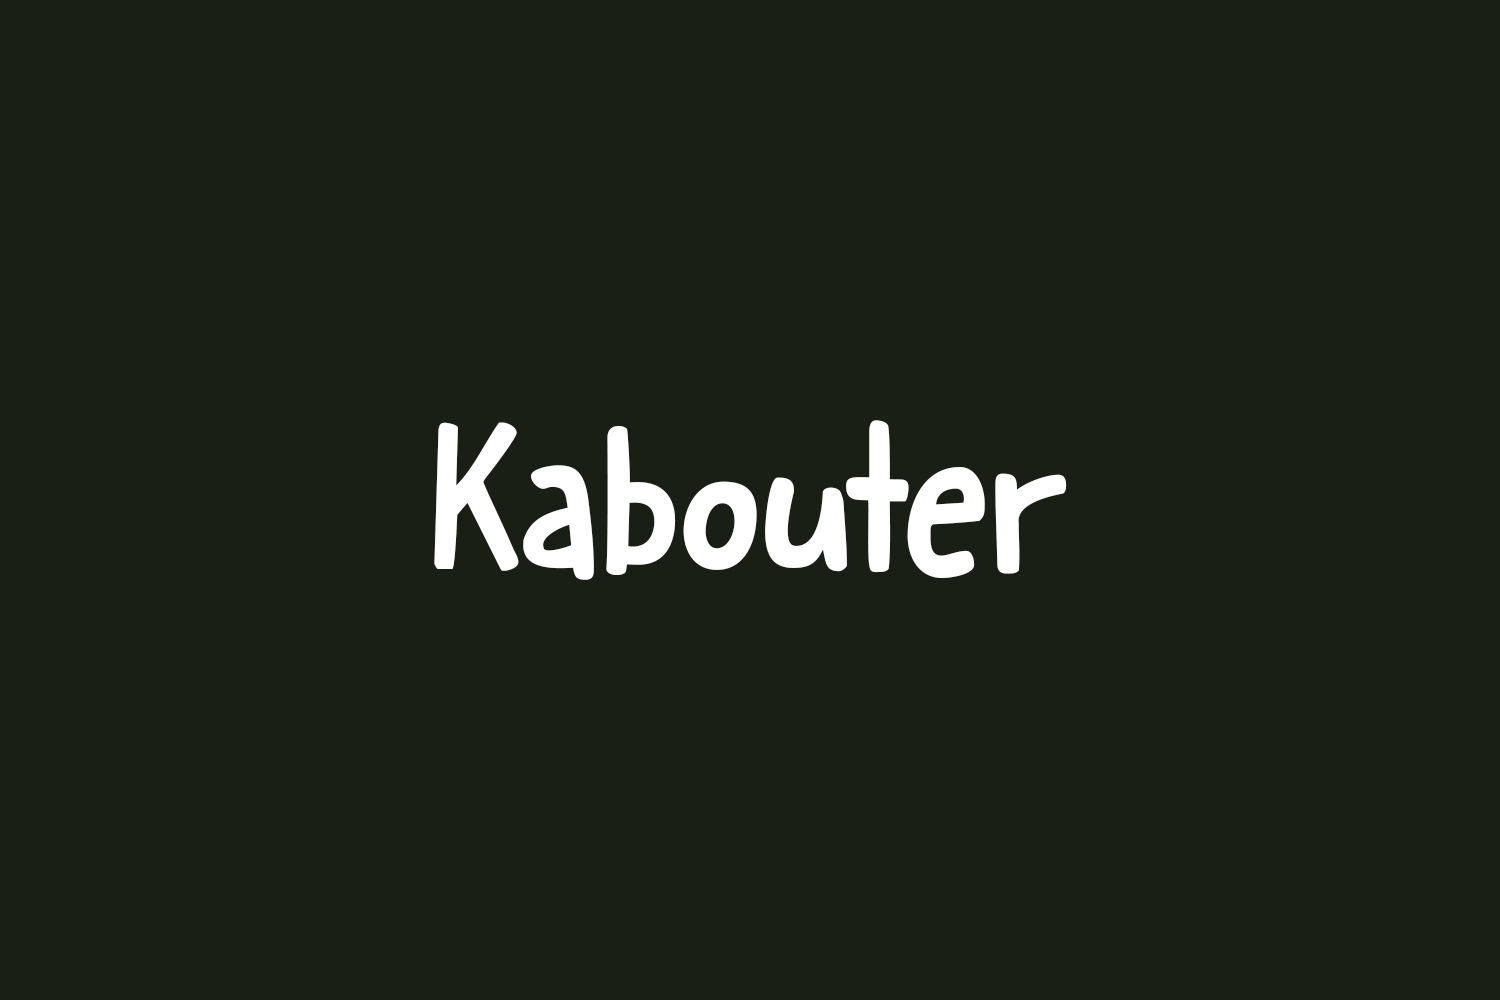 Kabouter Free Font